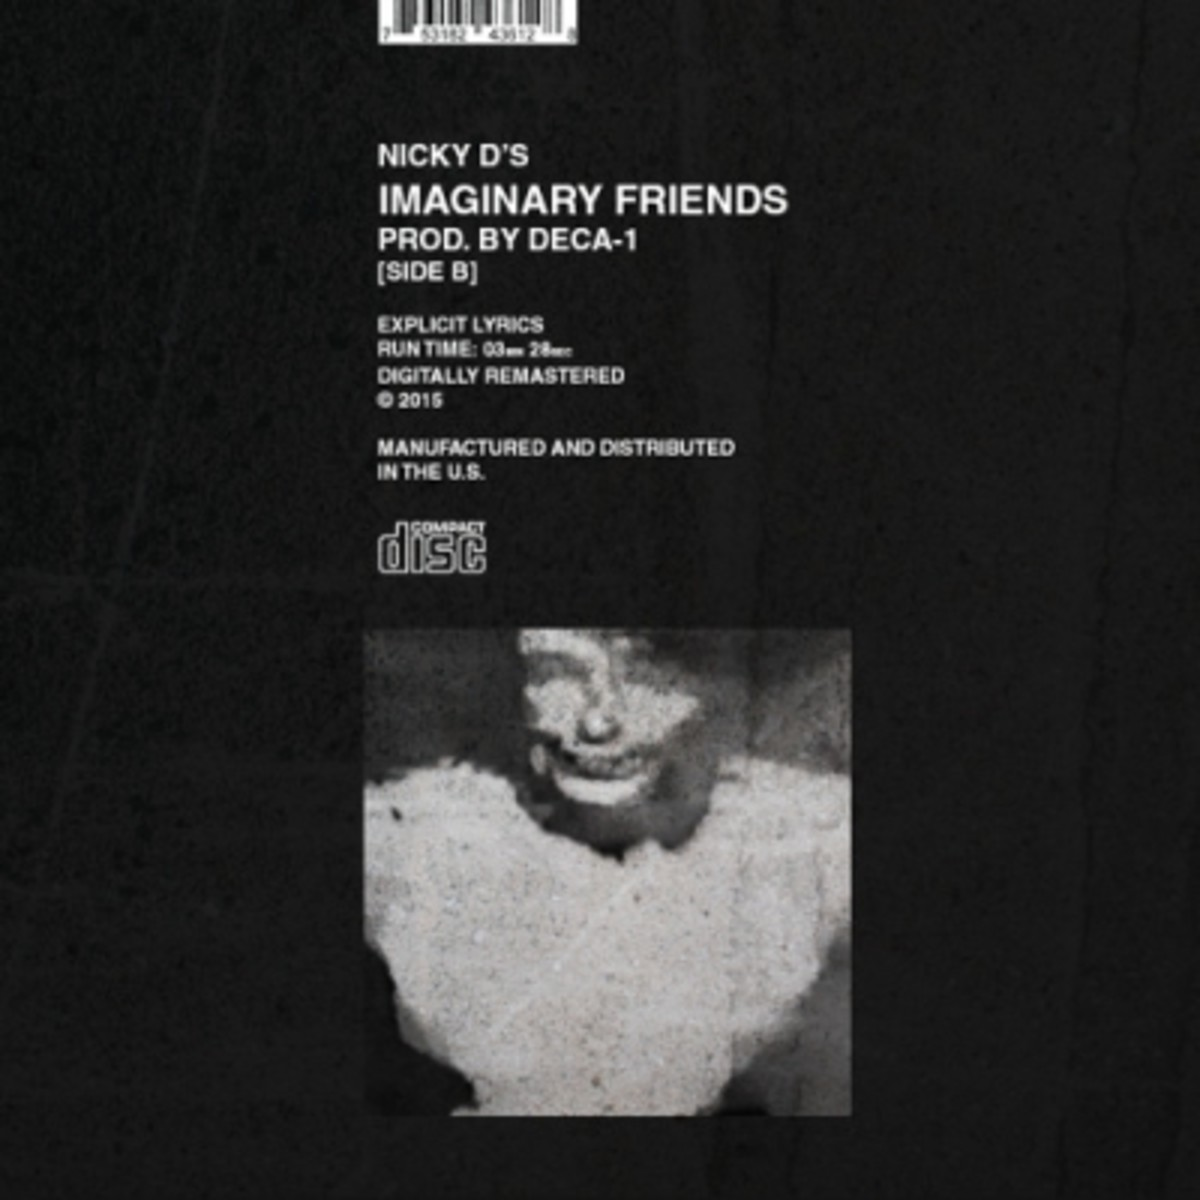 nicky-ds-imaginary-friends.jpg